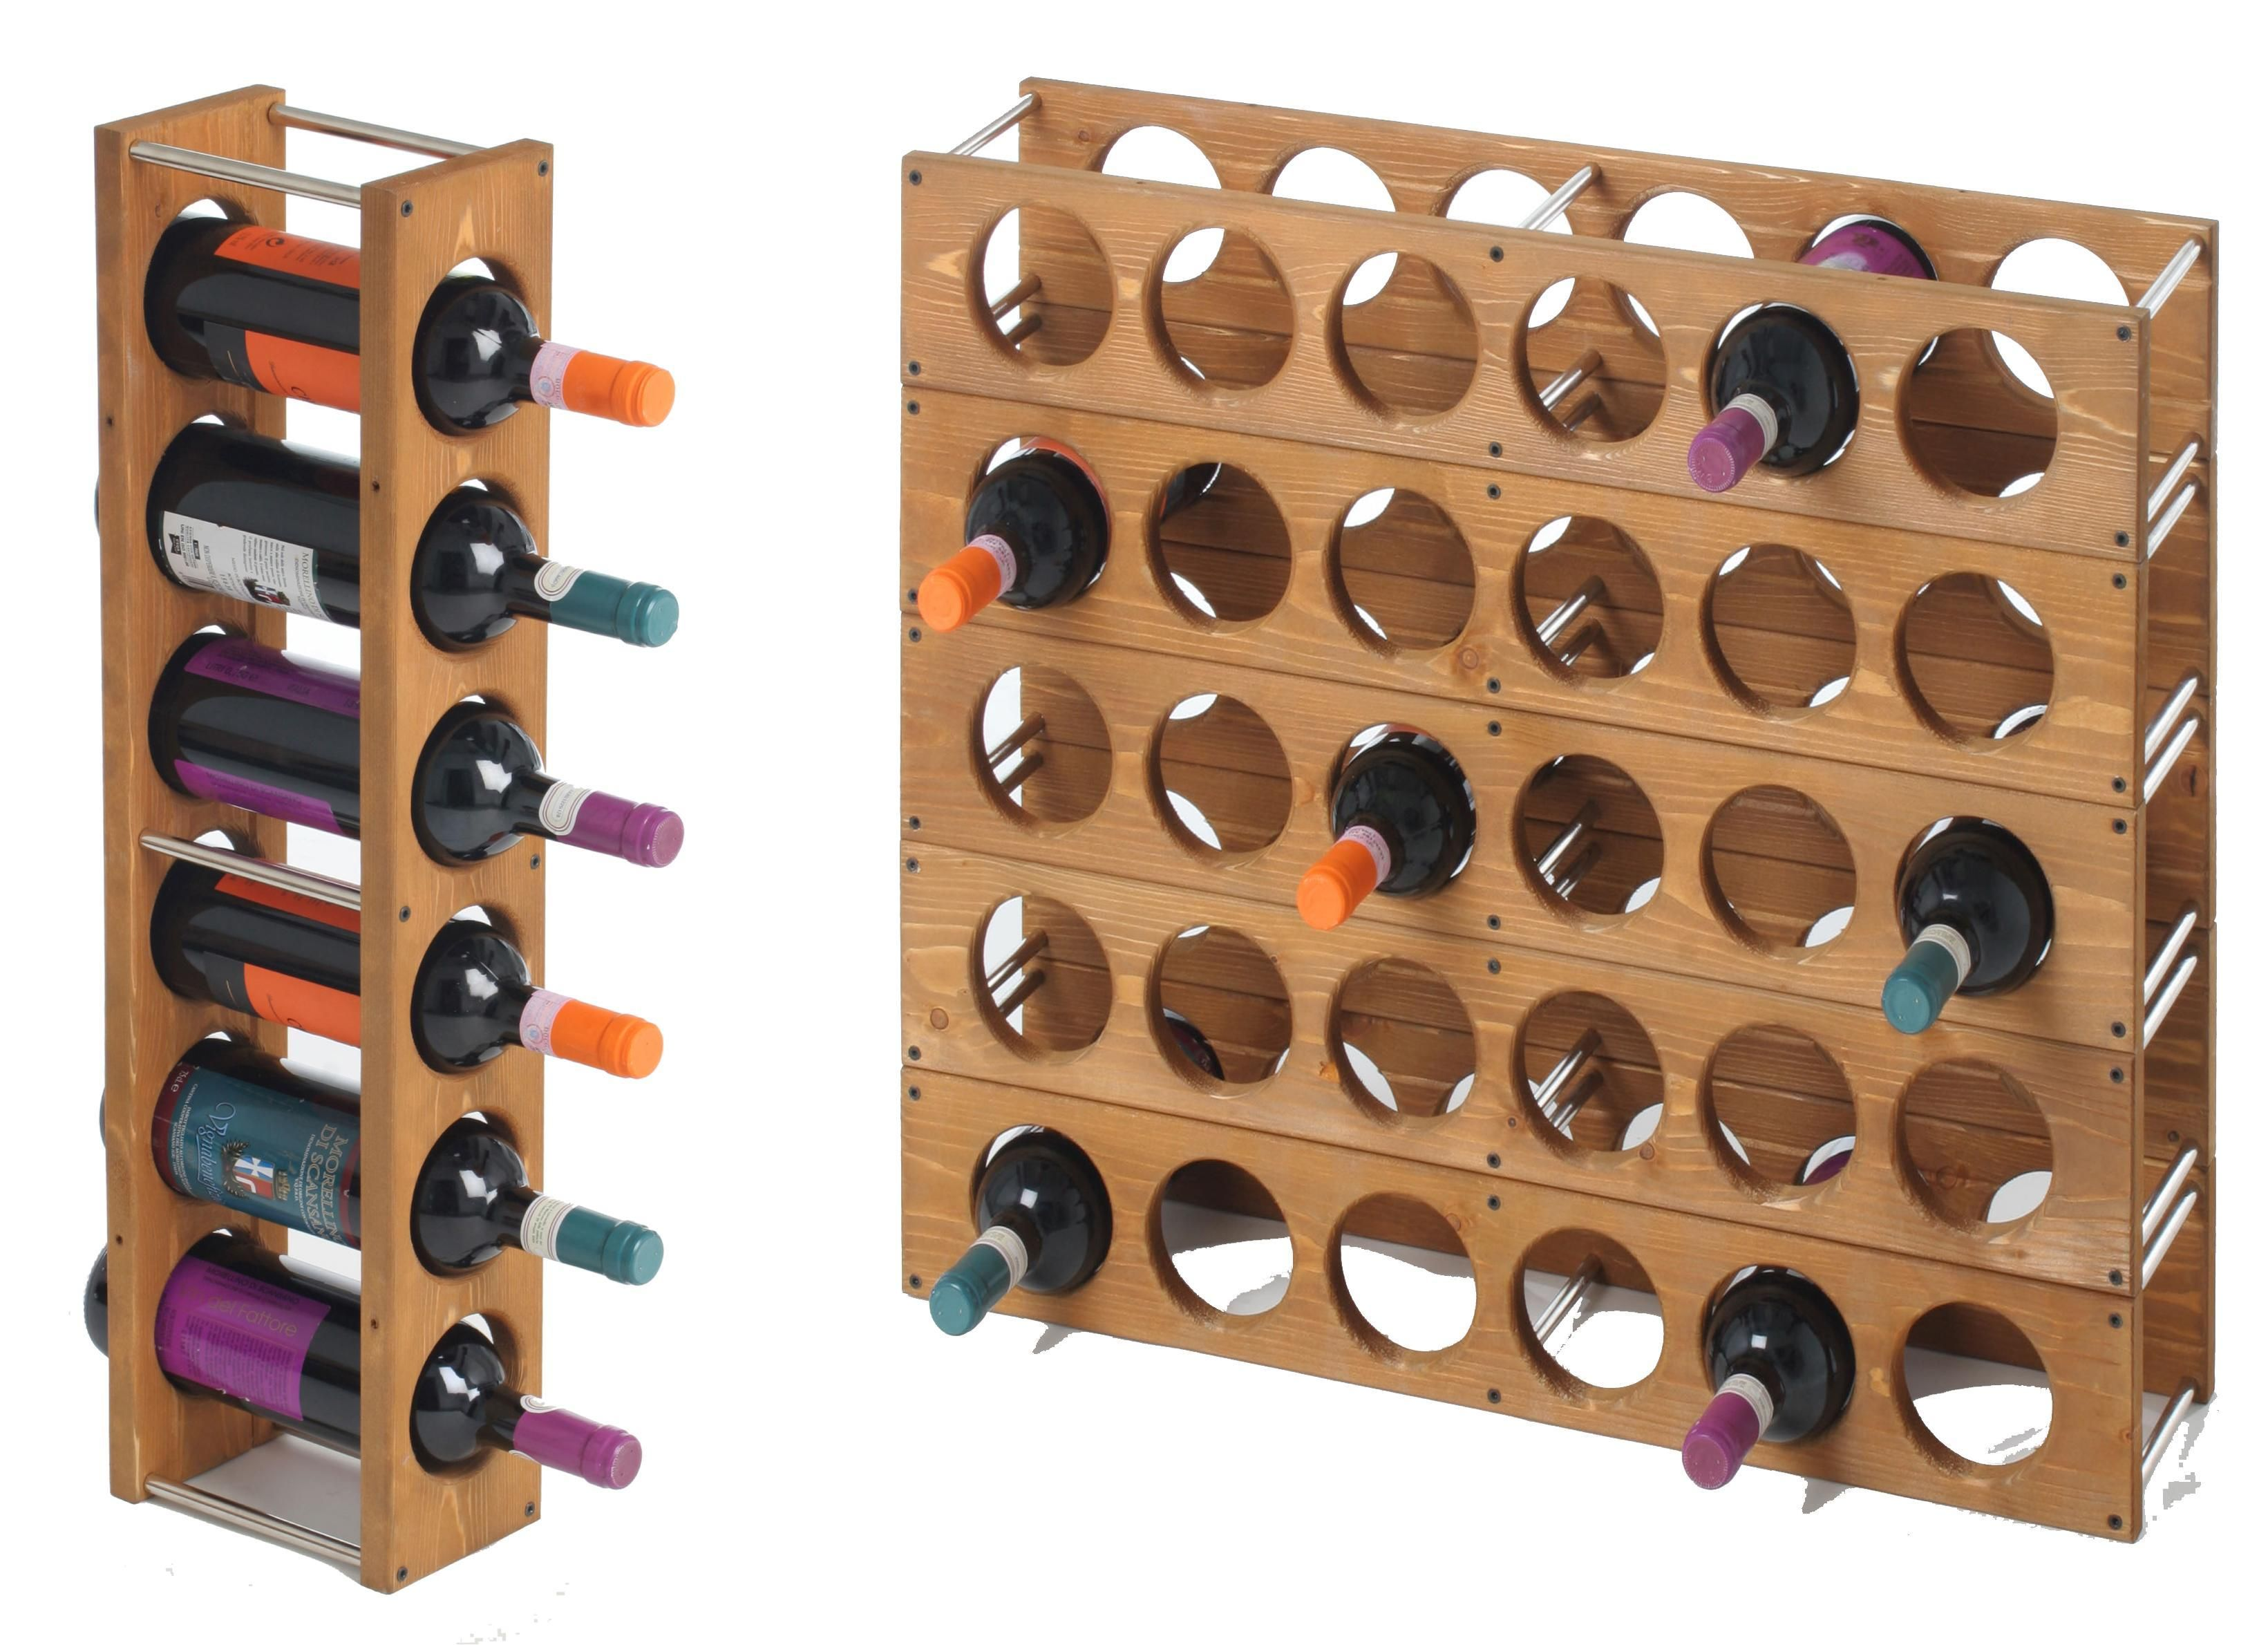 wood wine rack diy  simple design single column doesnt look  - condo design · wood wine rack